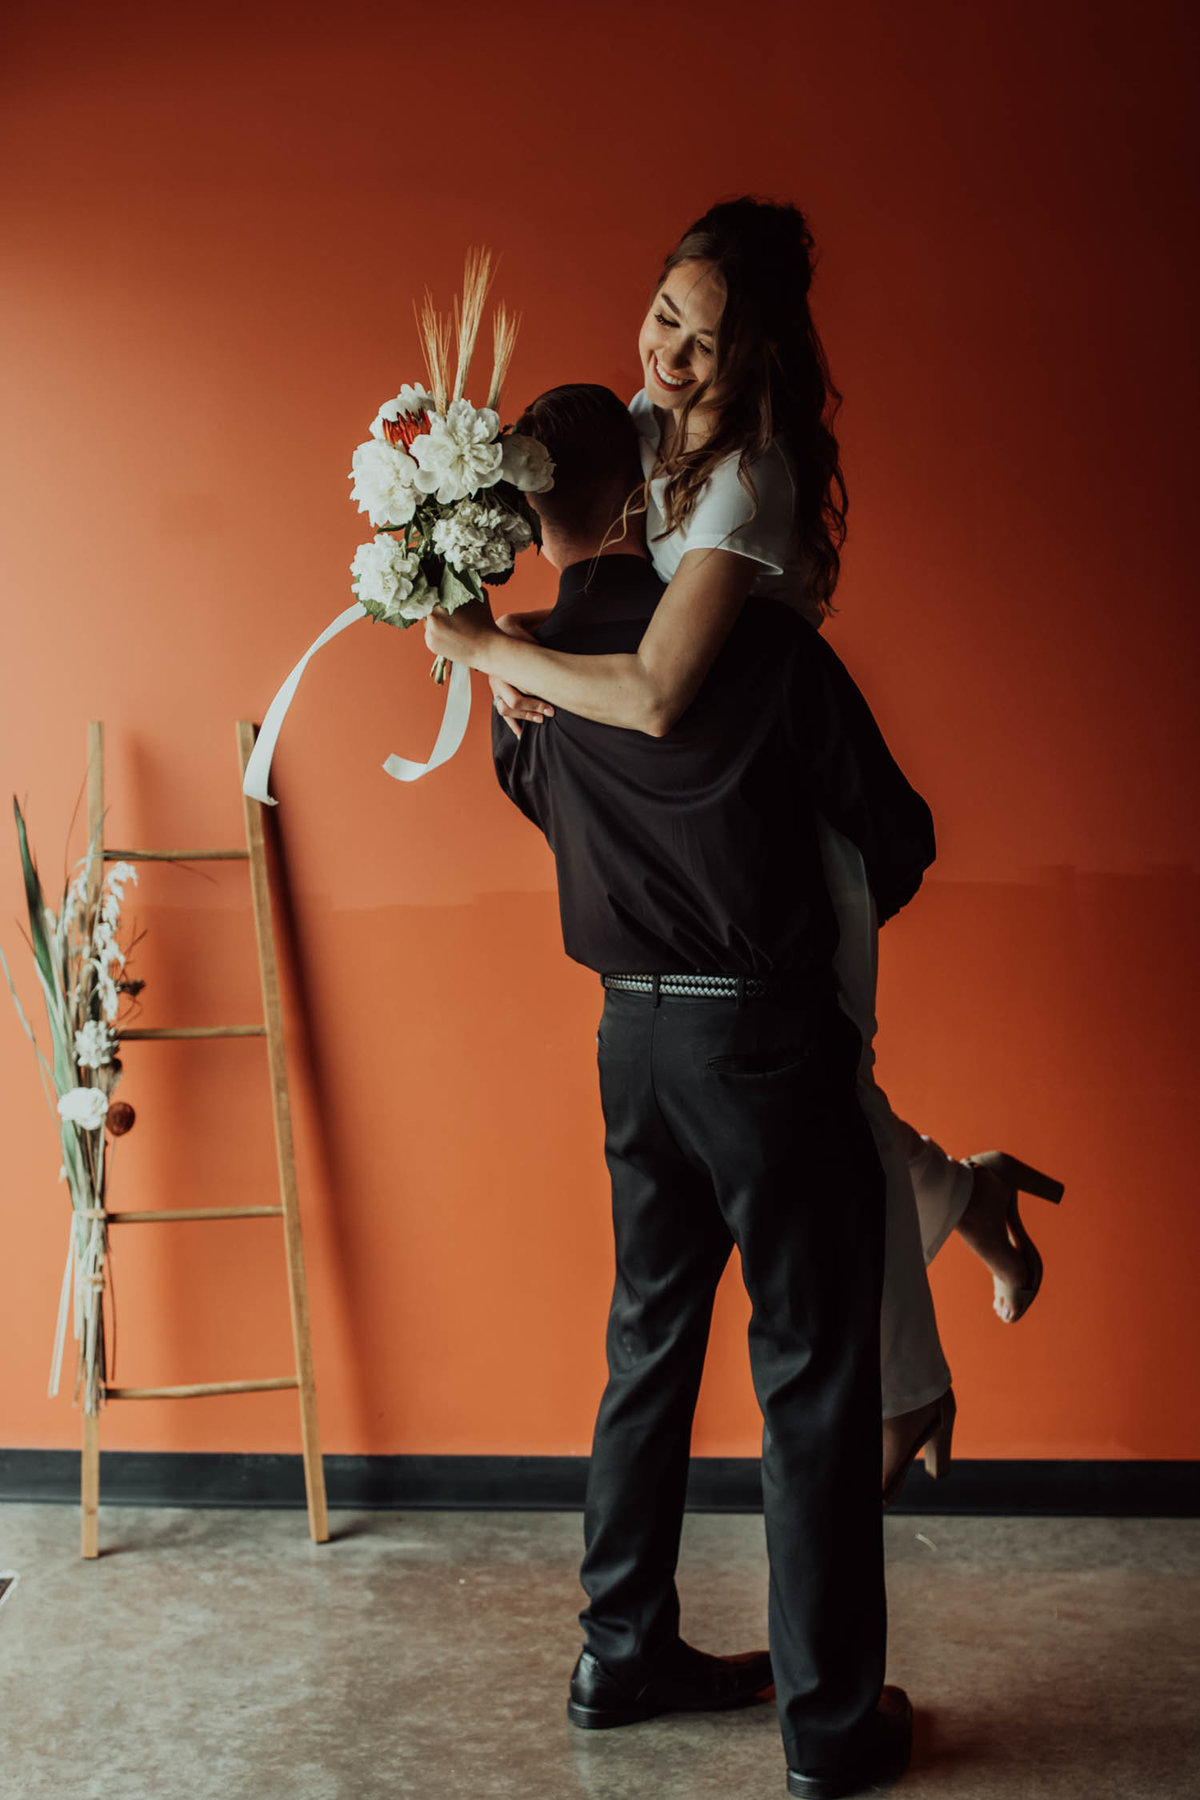 wedding-day-twirl-pose-elopement-chicago-photographer